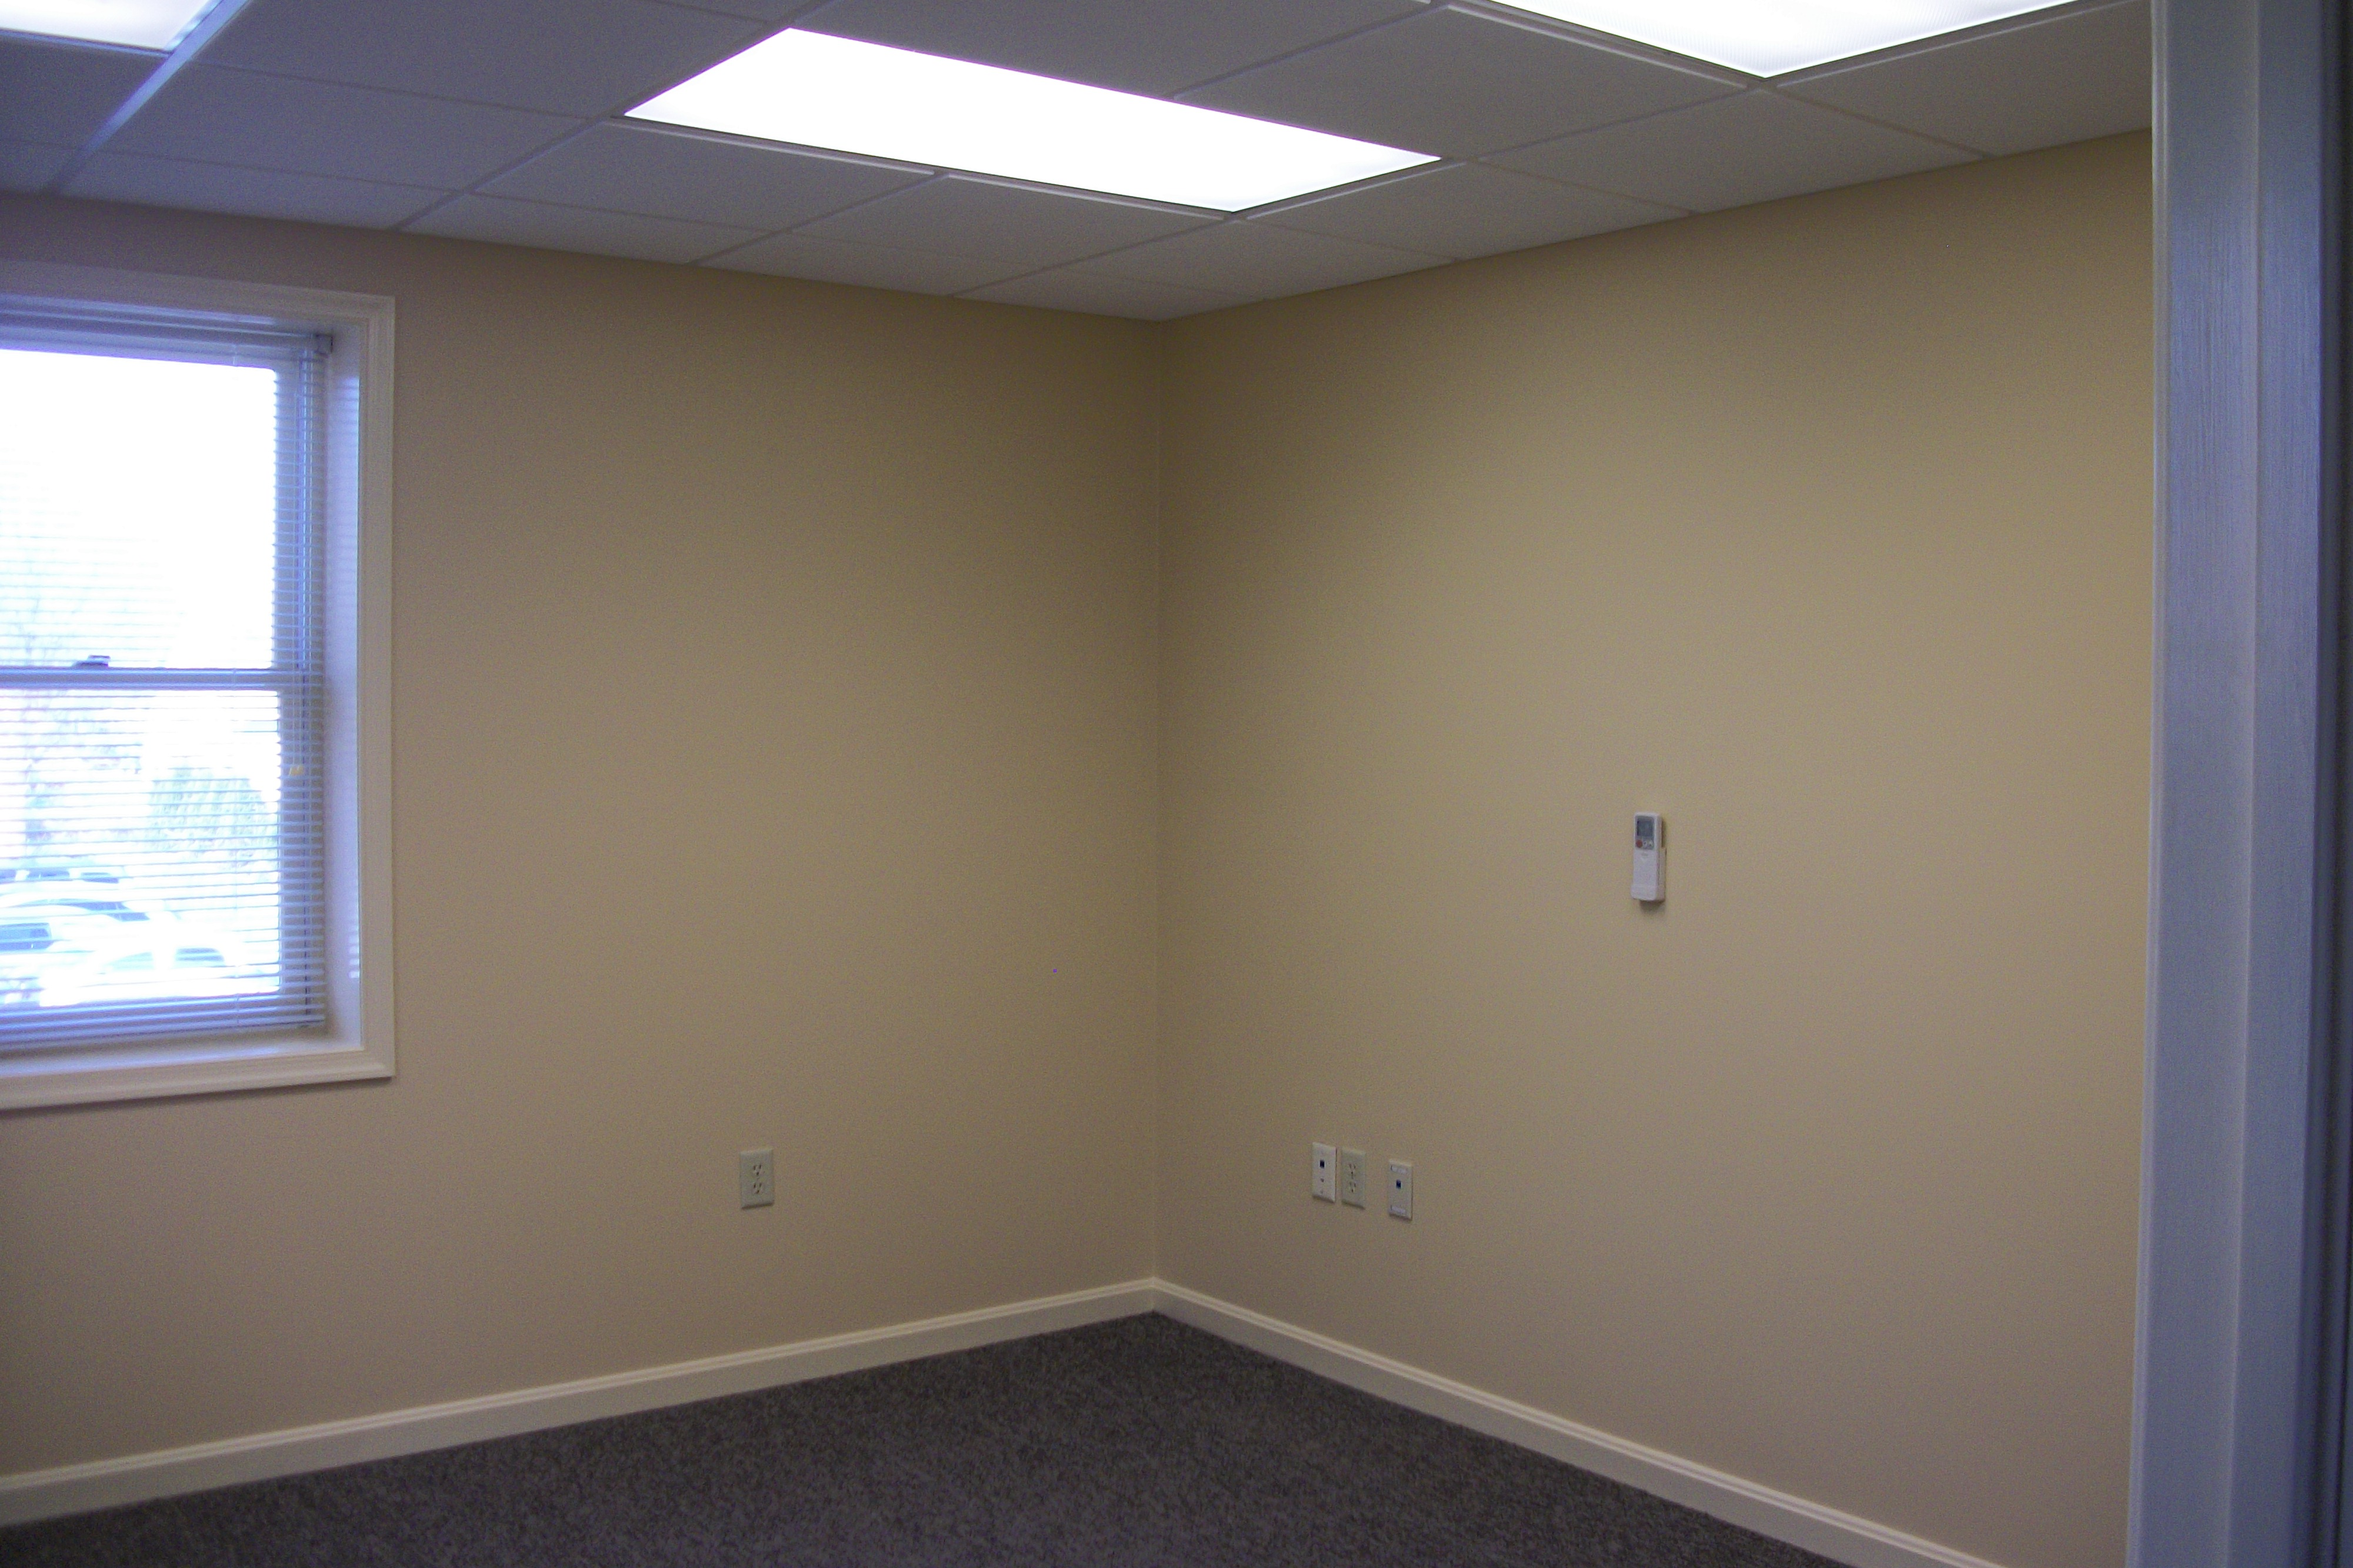 Office/warehouse space-great for growing company